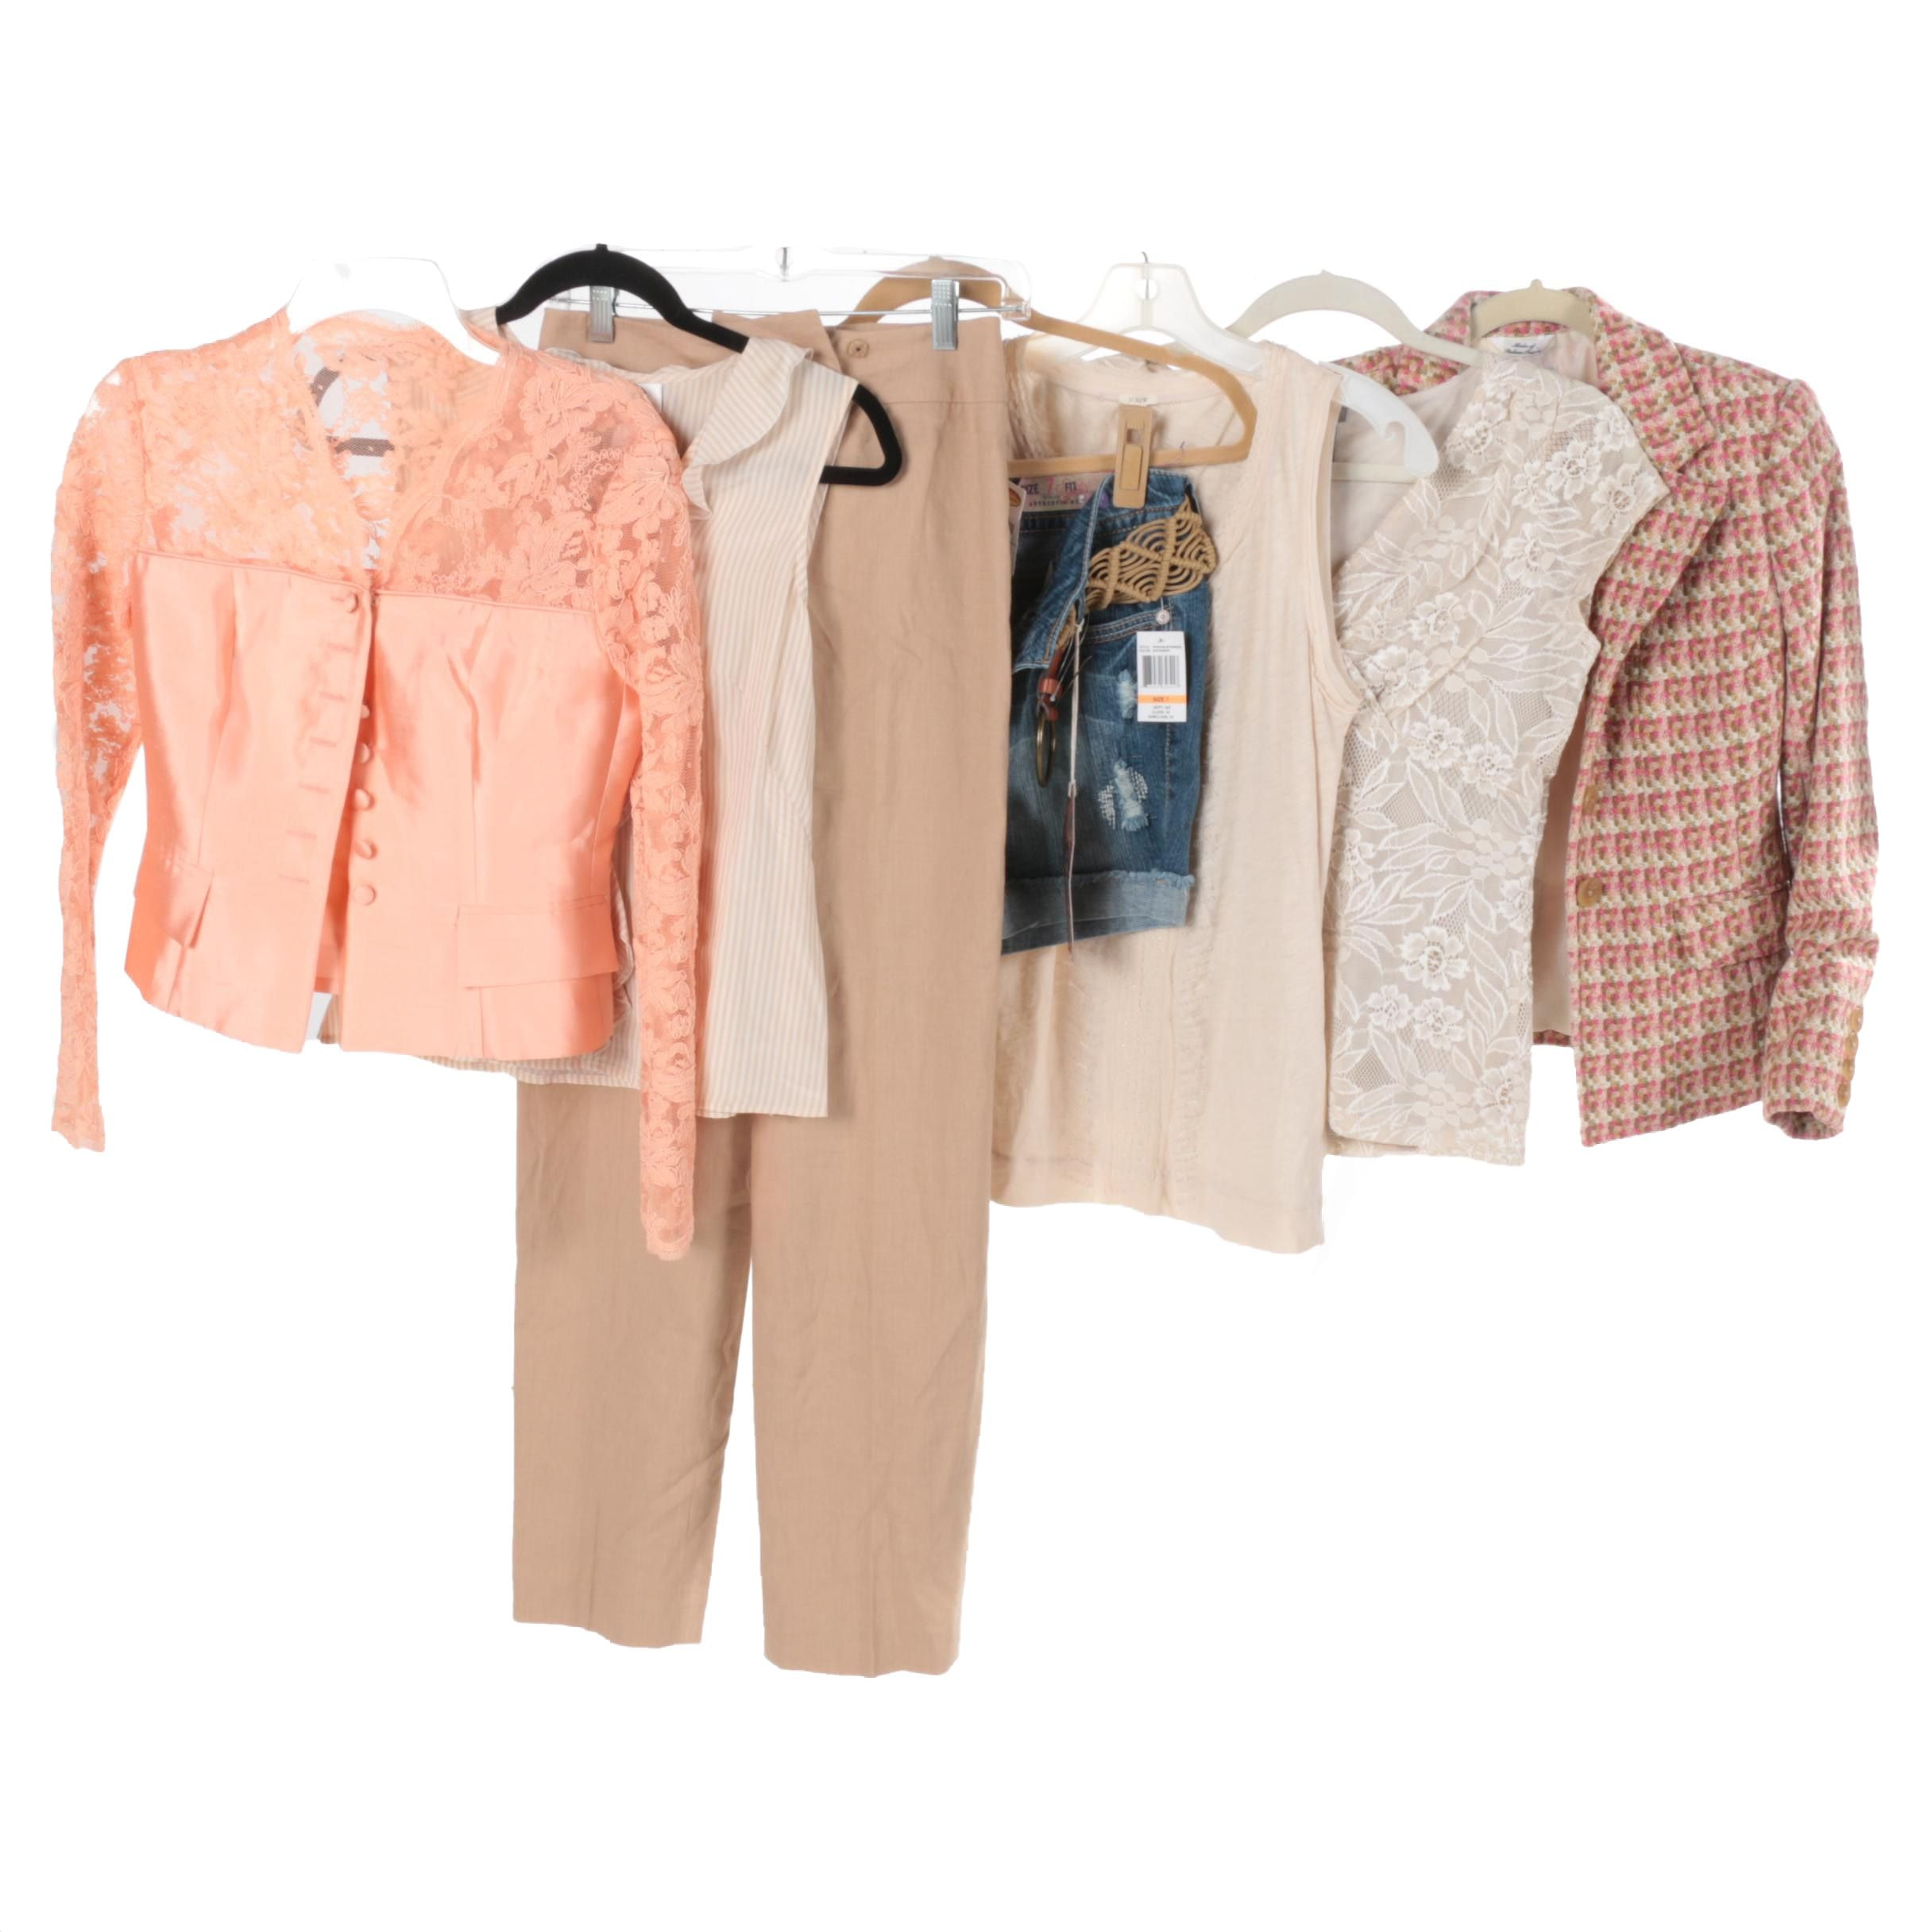 Women's Talbots Separates and More